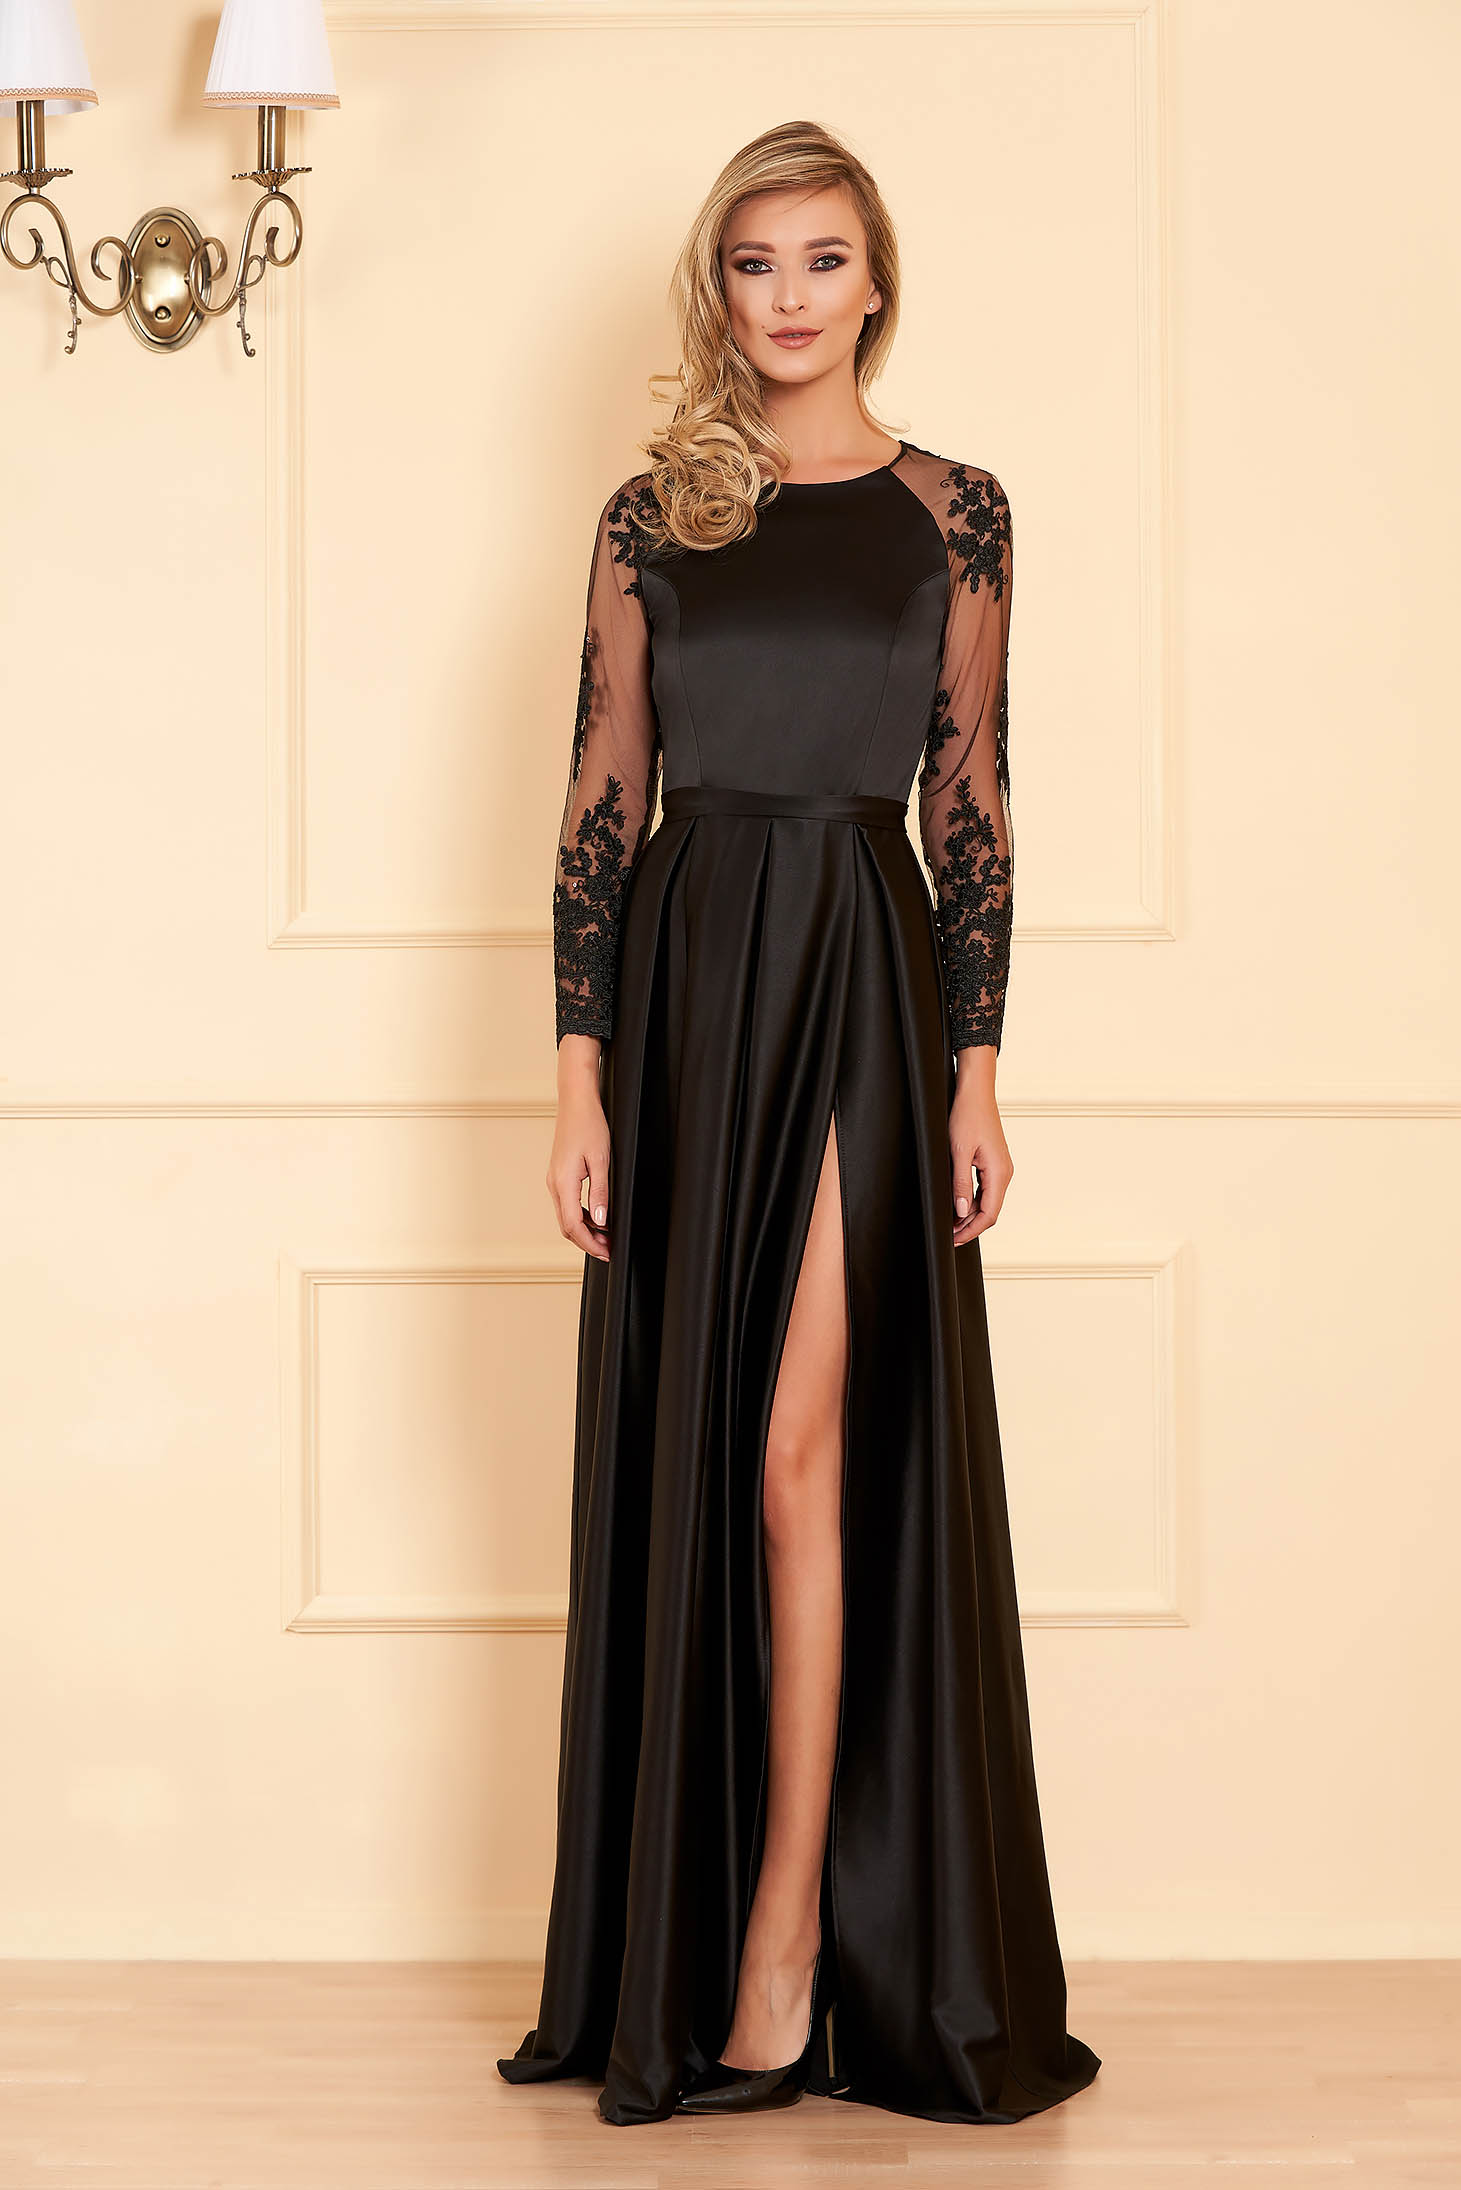 Black occasional dress flaring cut from satin fabric texture with laced sleeves